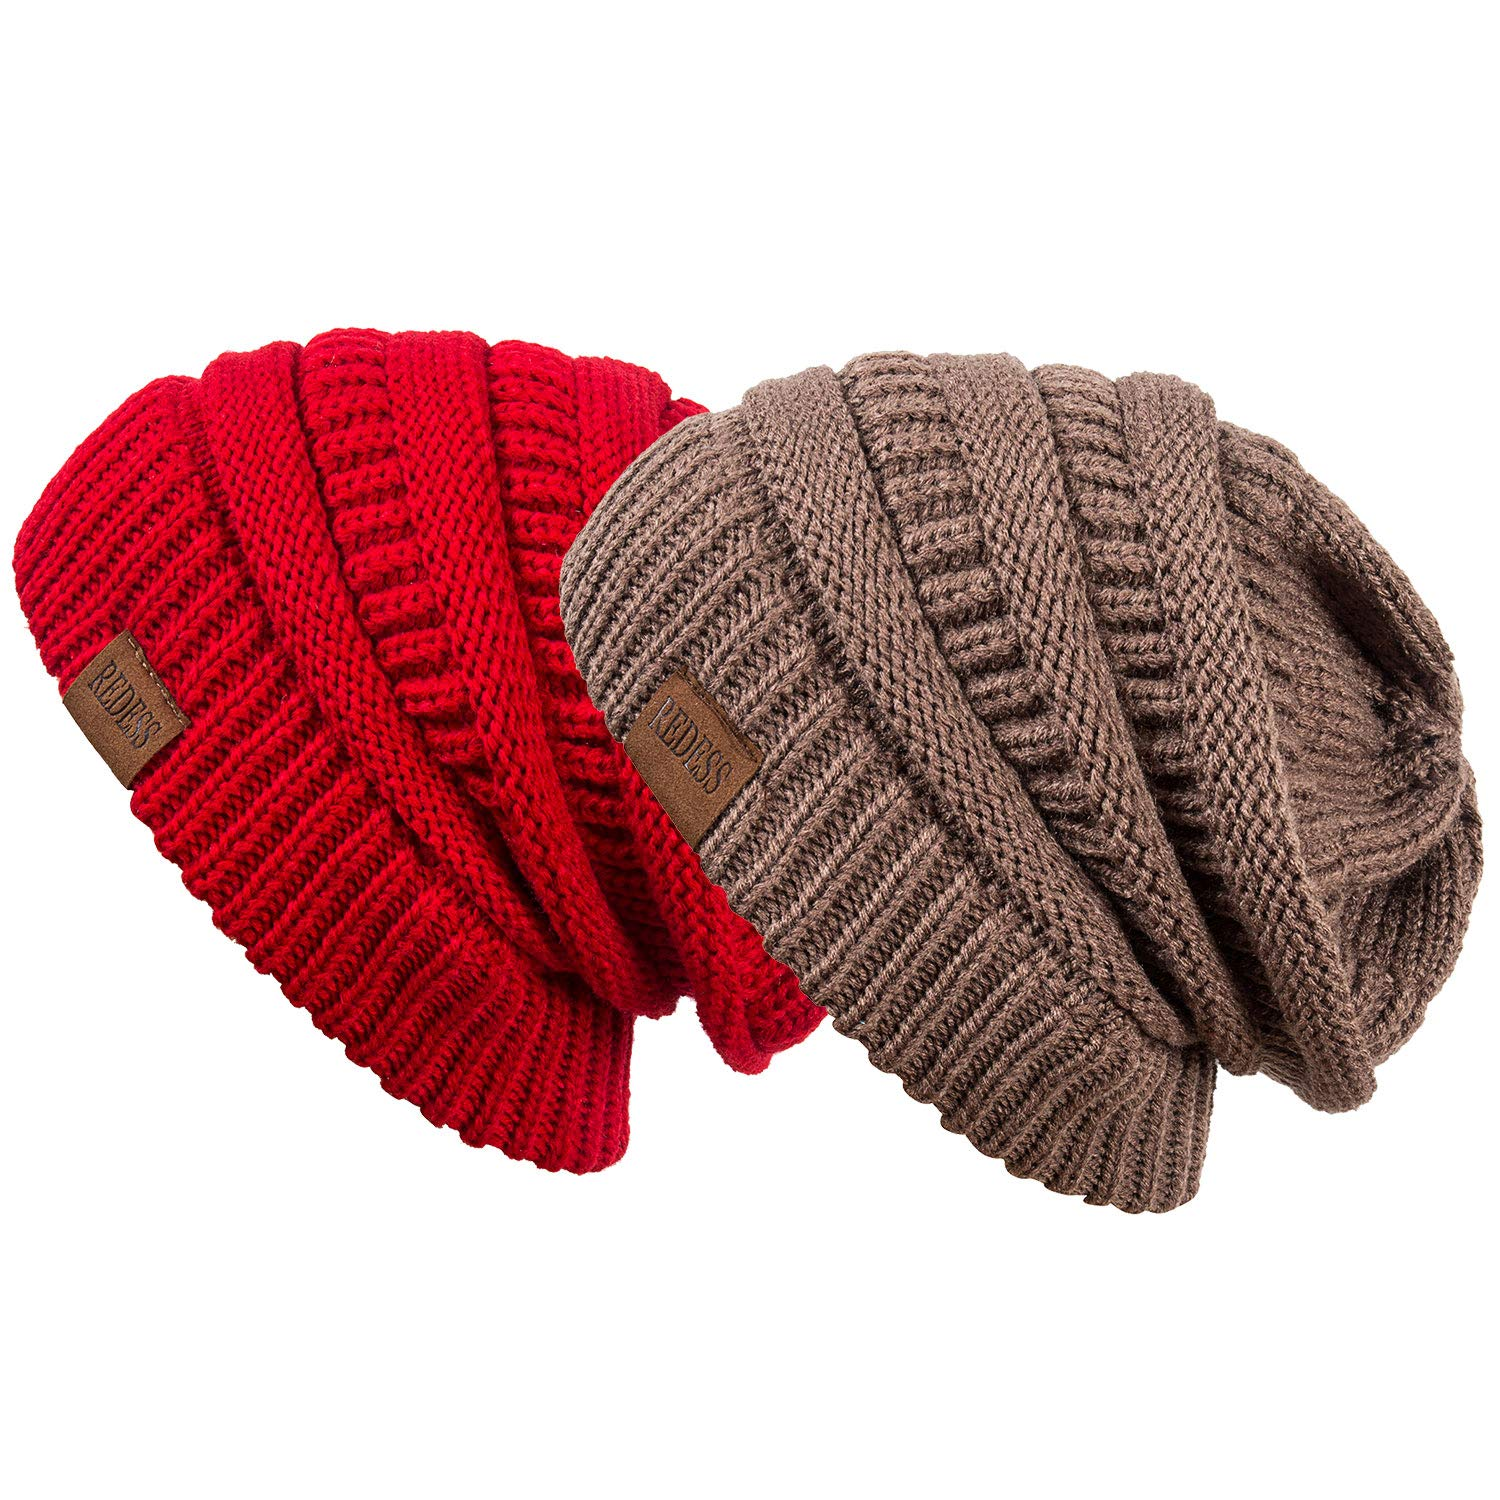 c8b82b572 Best Rated in Women's Cold Weather Hats & Caps & Helpful Customer ...